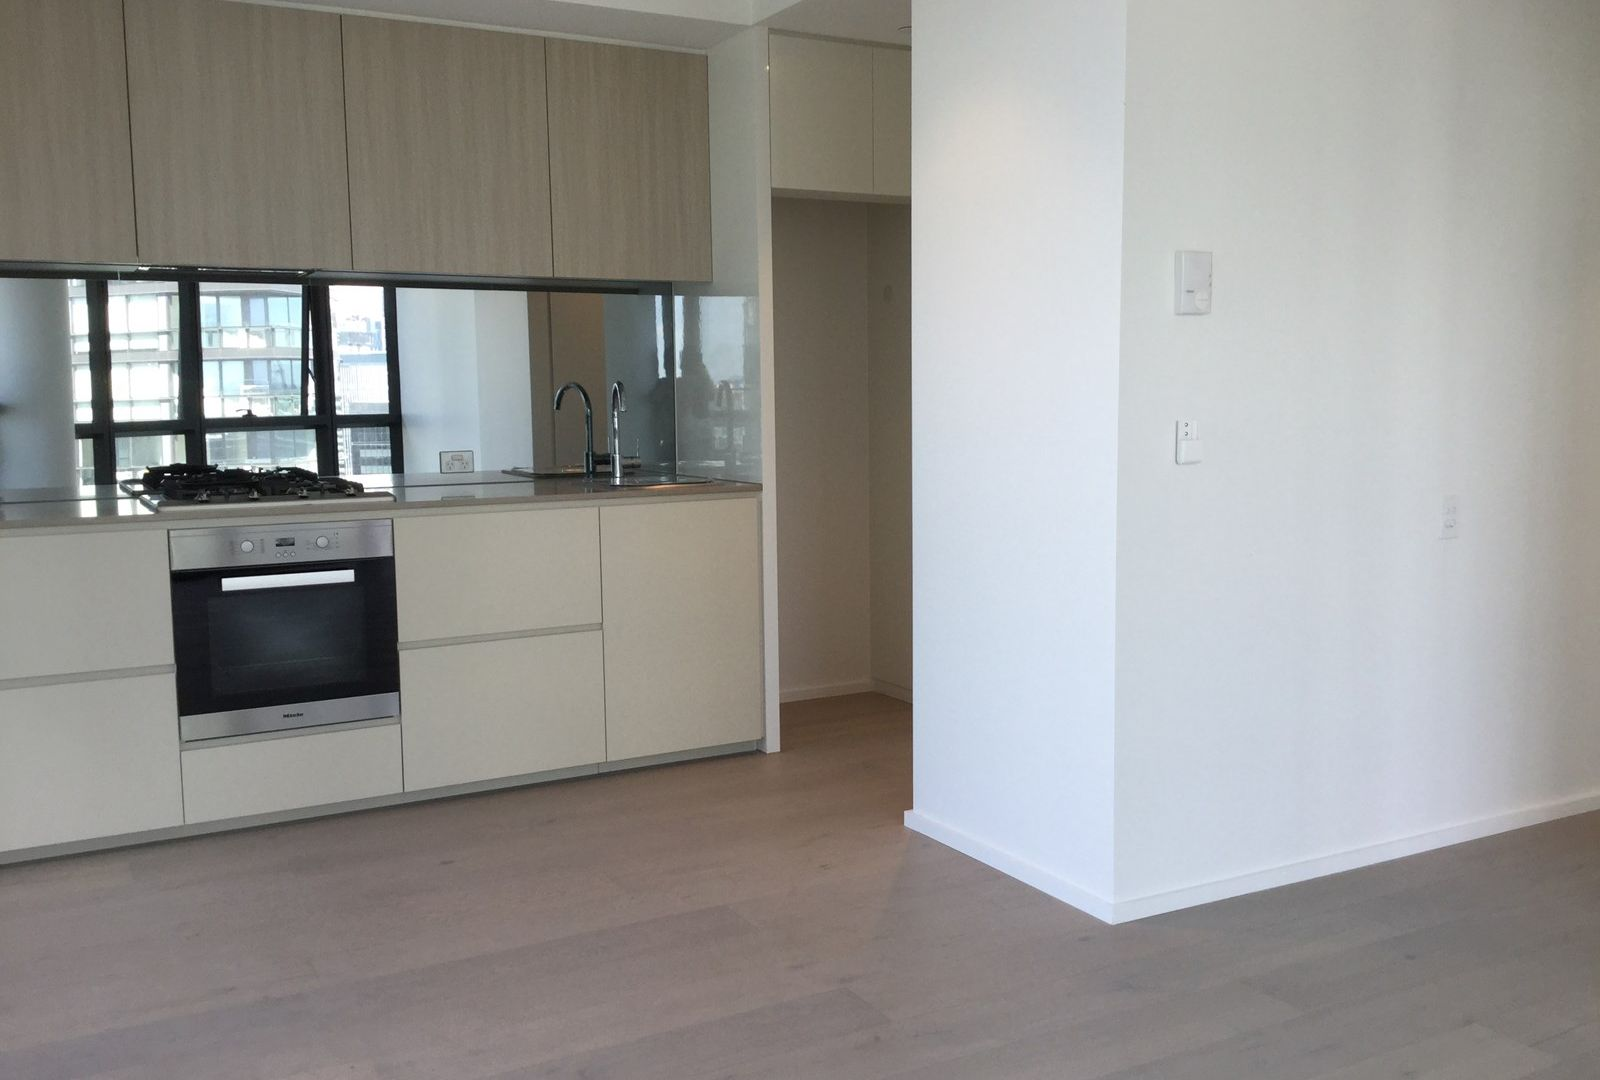 2004N/889 Collins, Docklands VIC 3008, Image 2